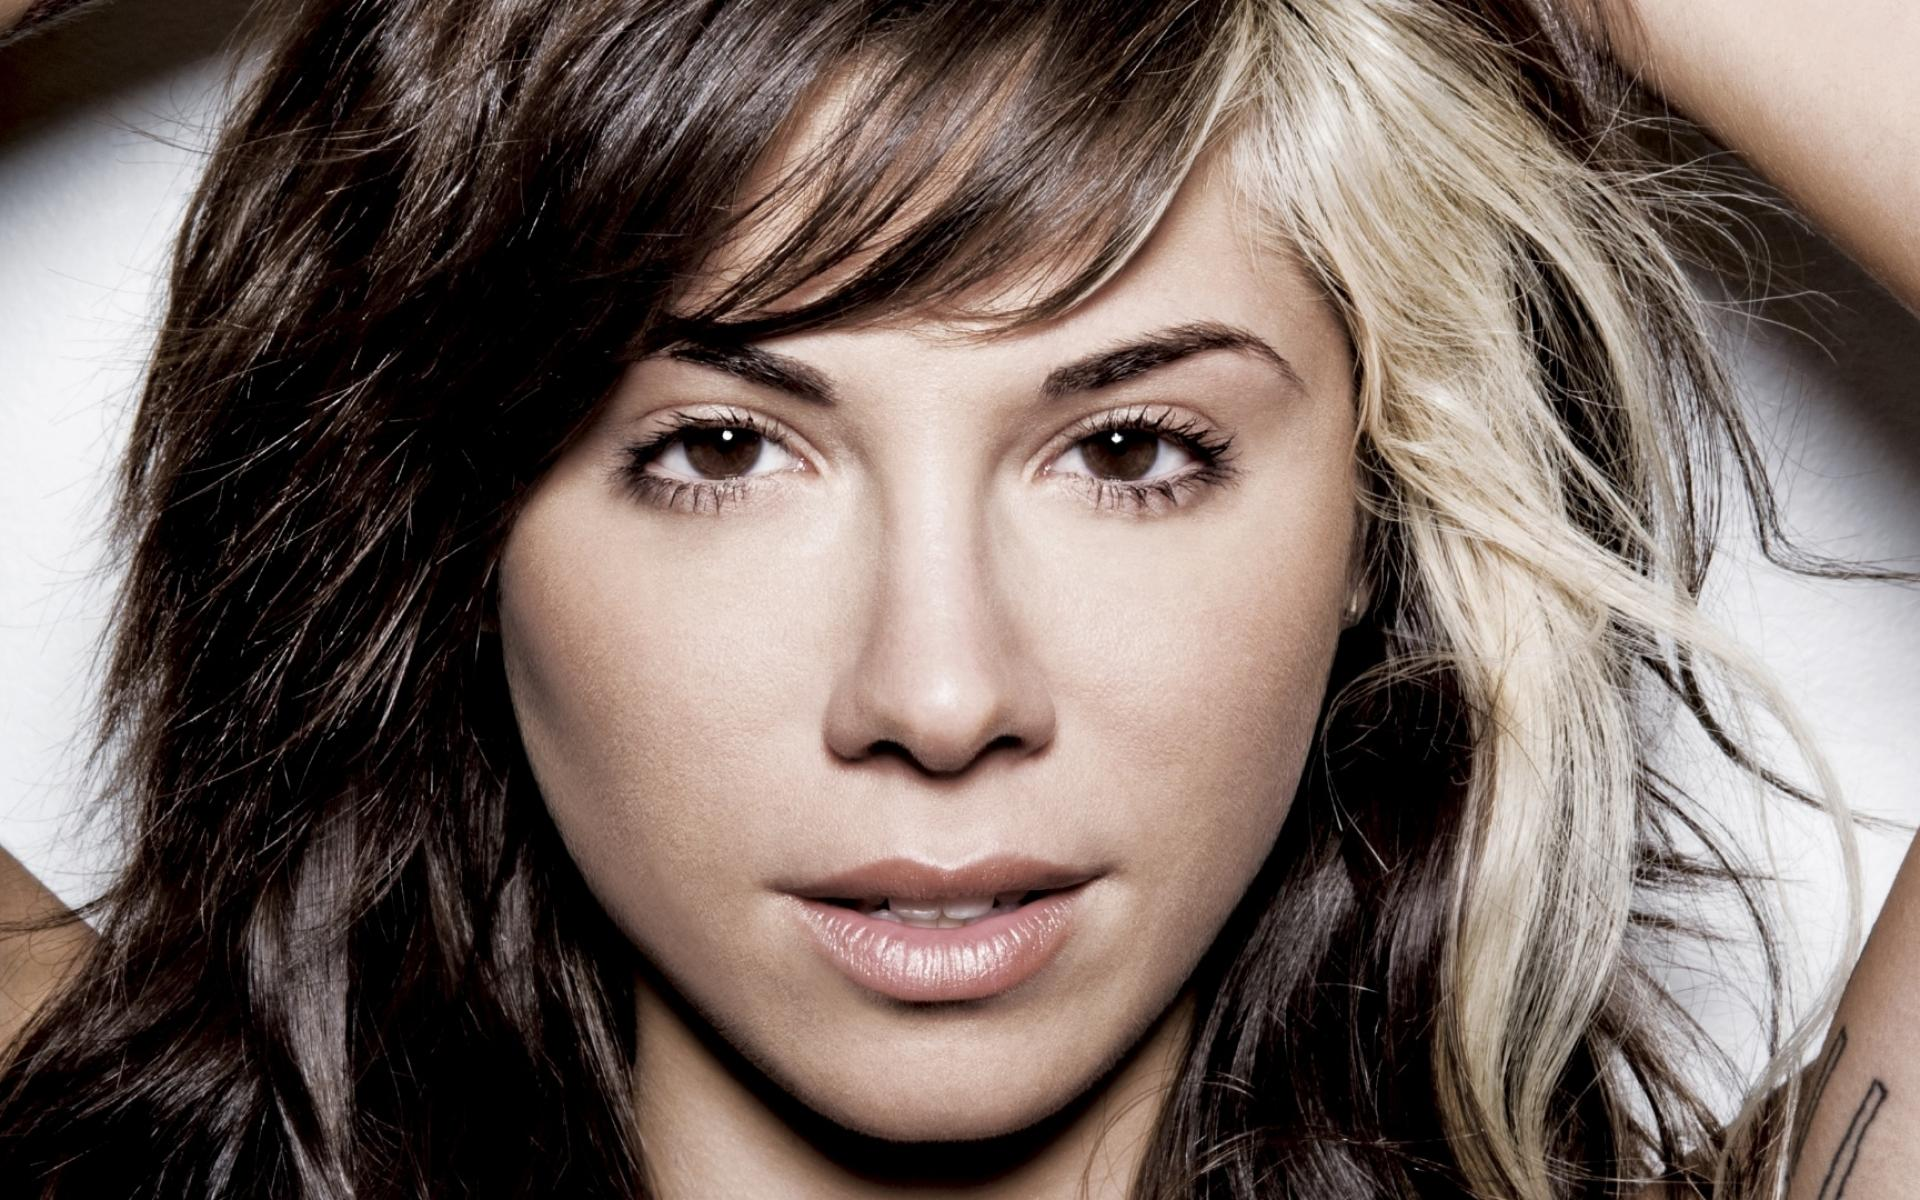 Christina Perri Wallpaper Hd for Pinterest 1920x1200